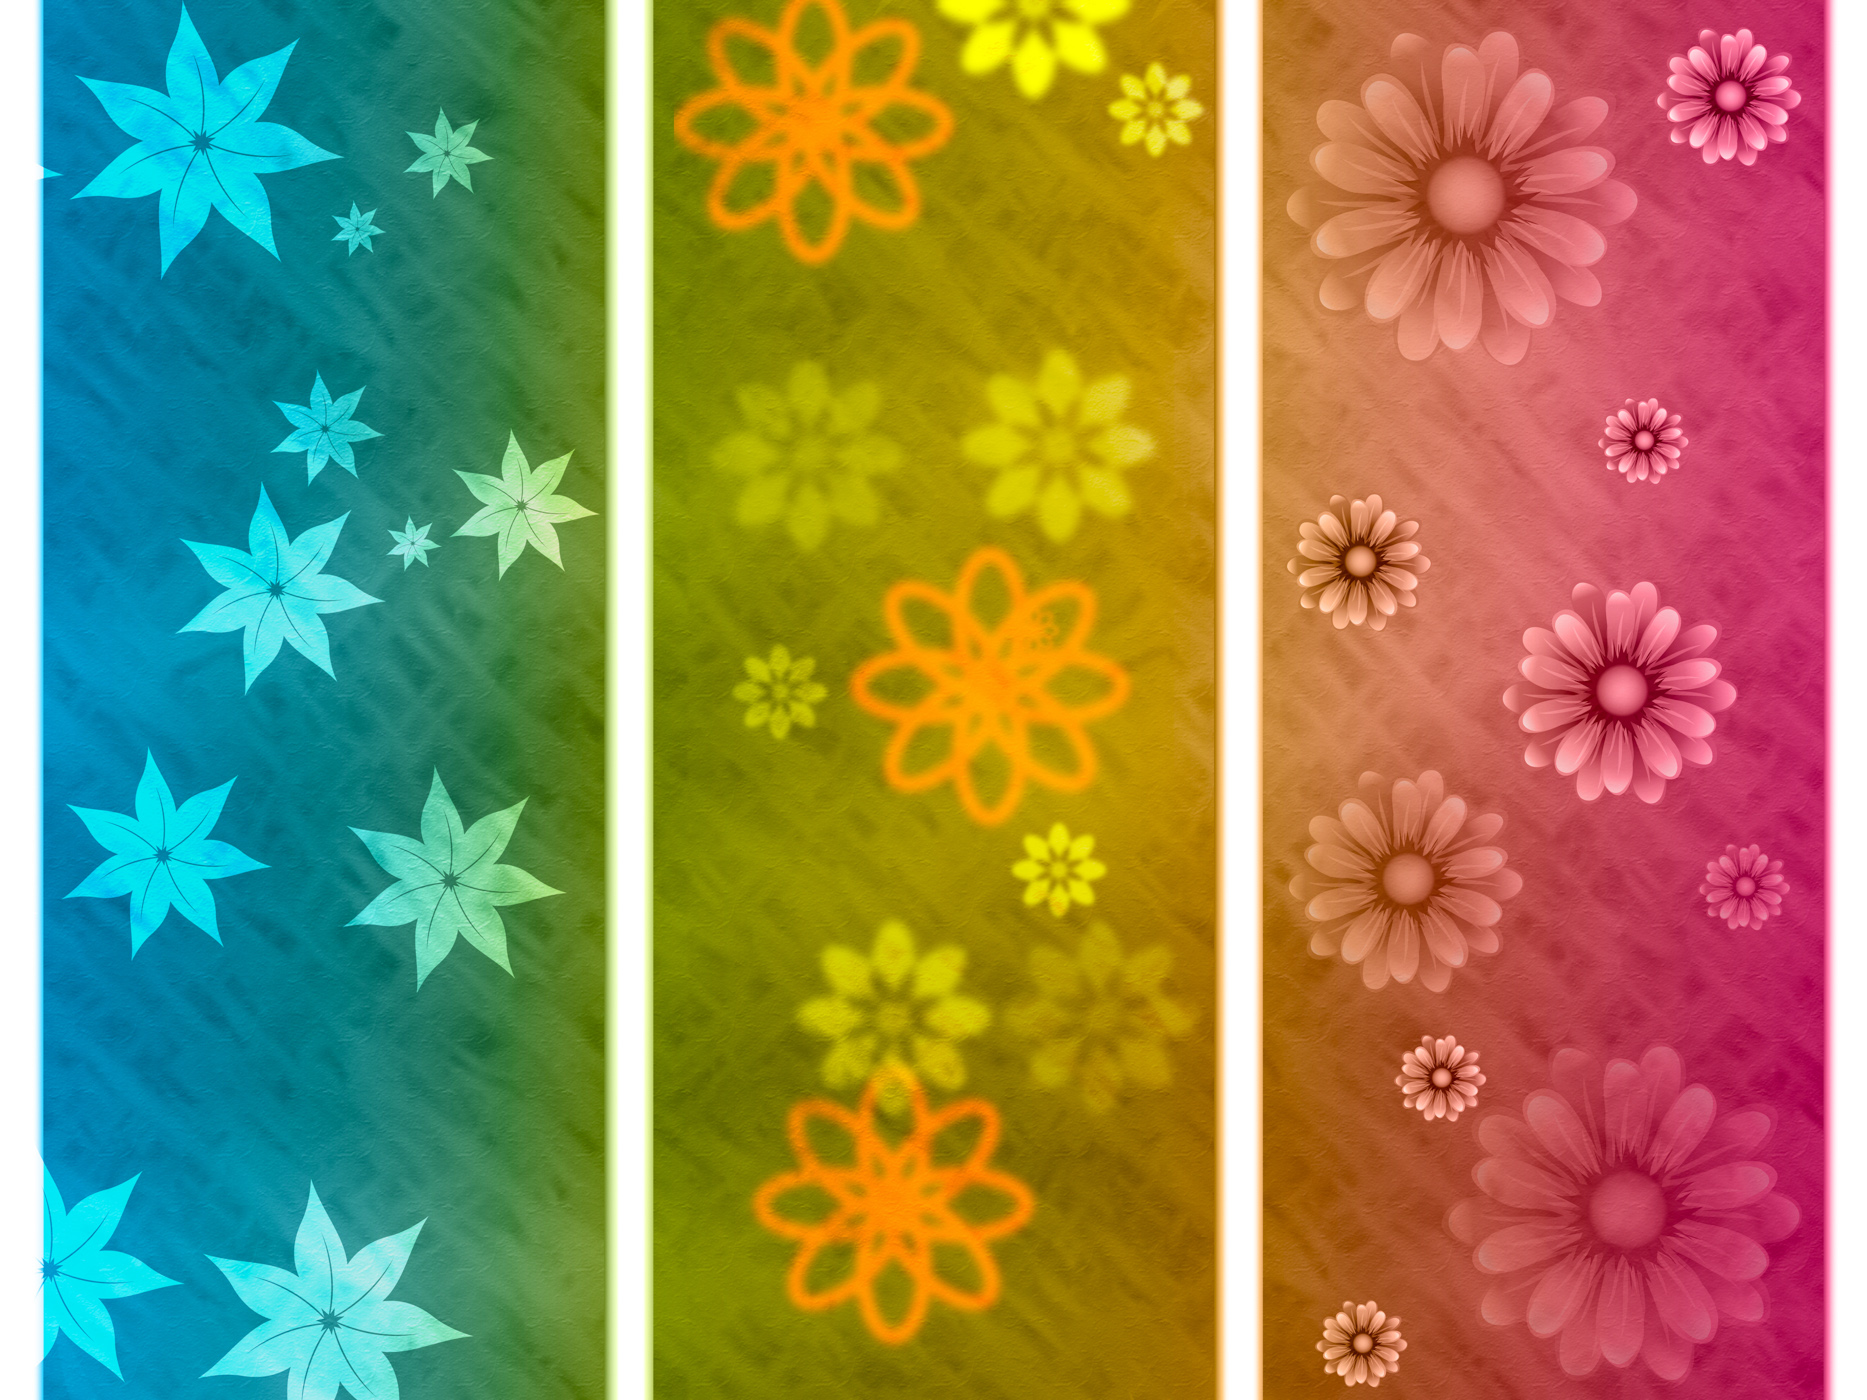 Color background indicates abstract environmental and bouquet photo